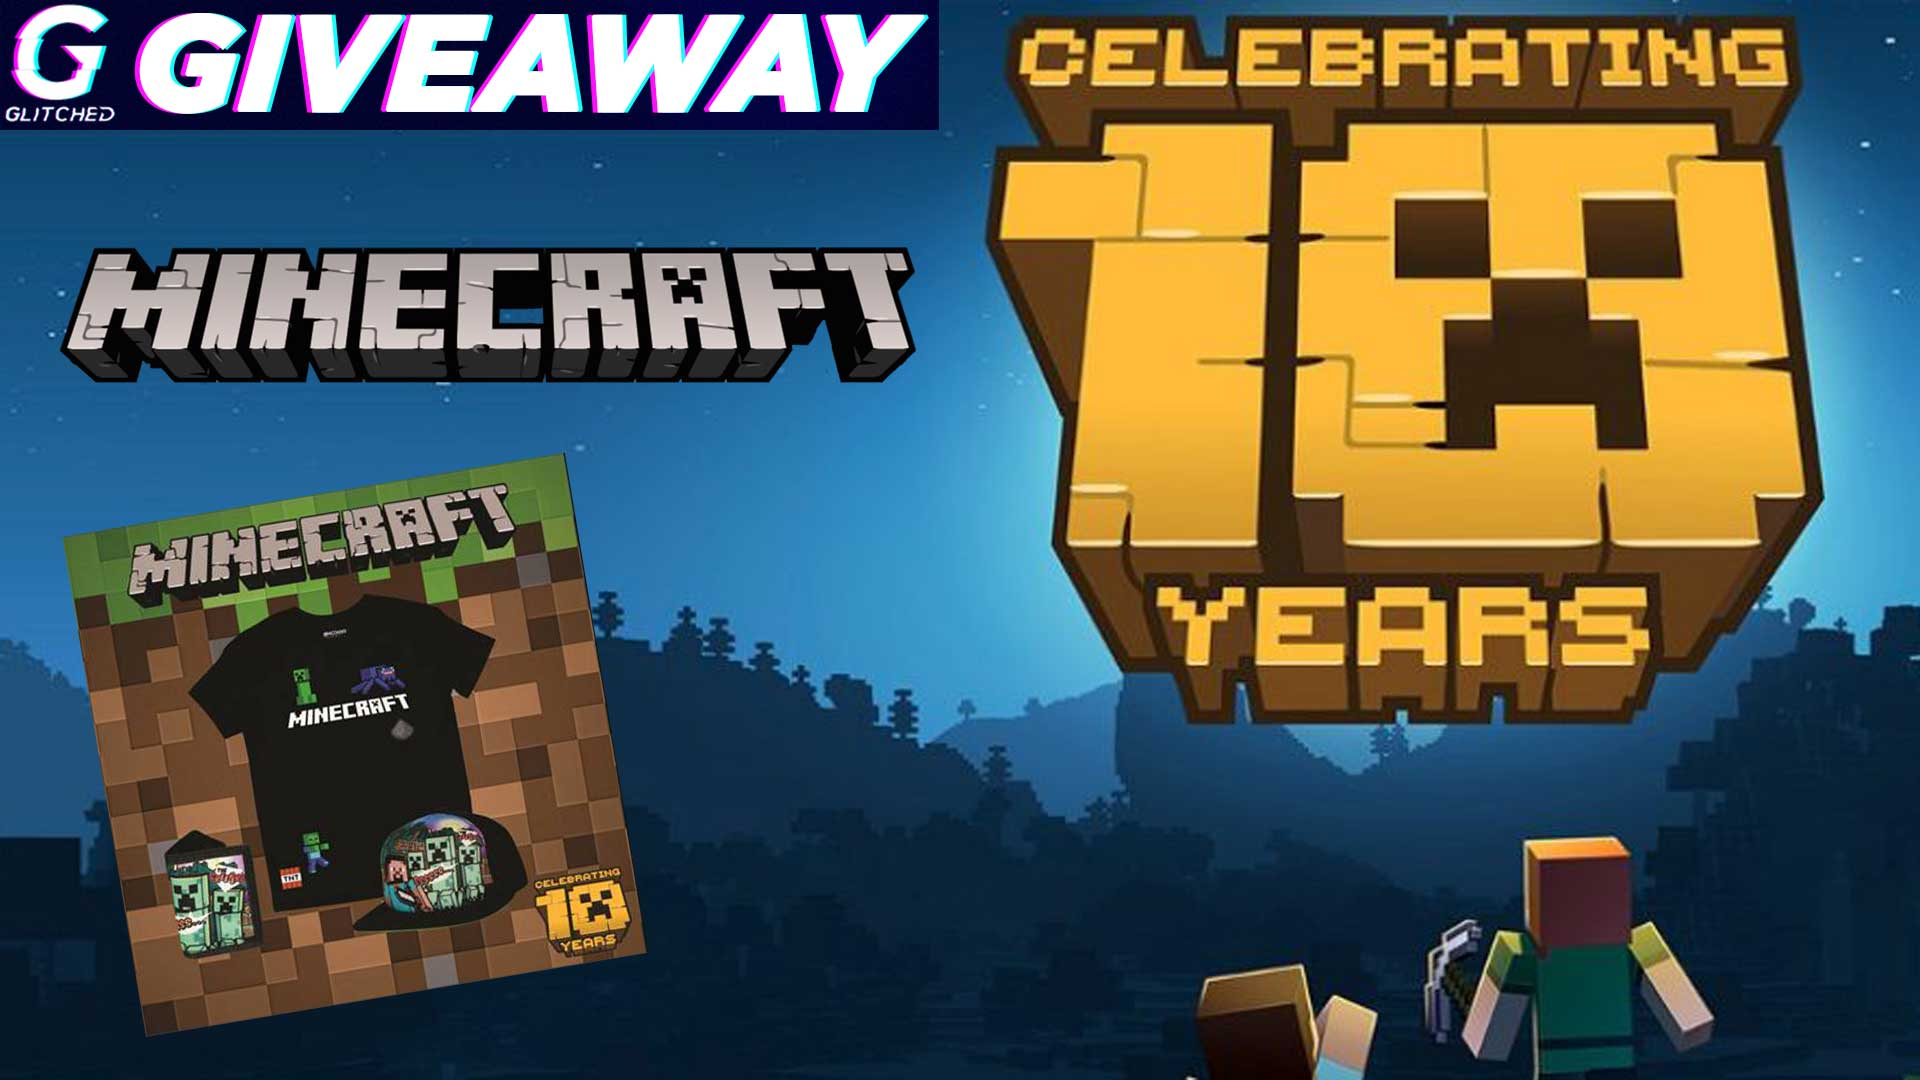 Minecraft Giveaway